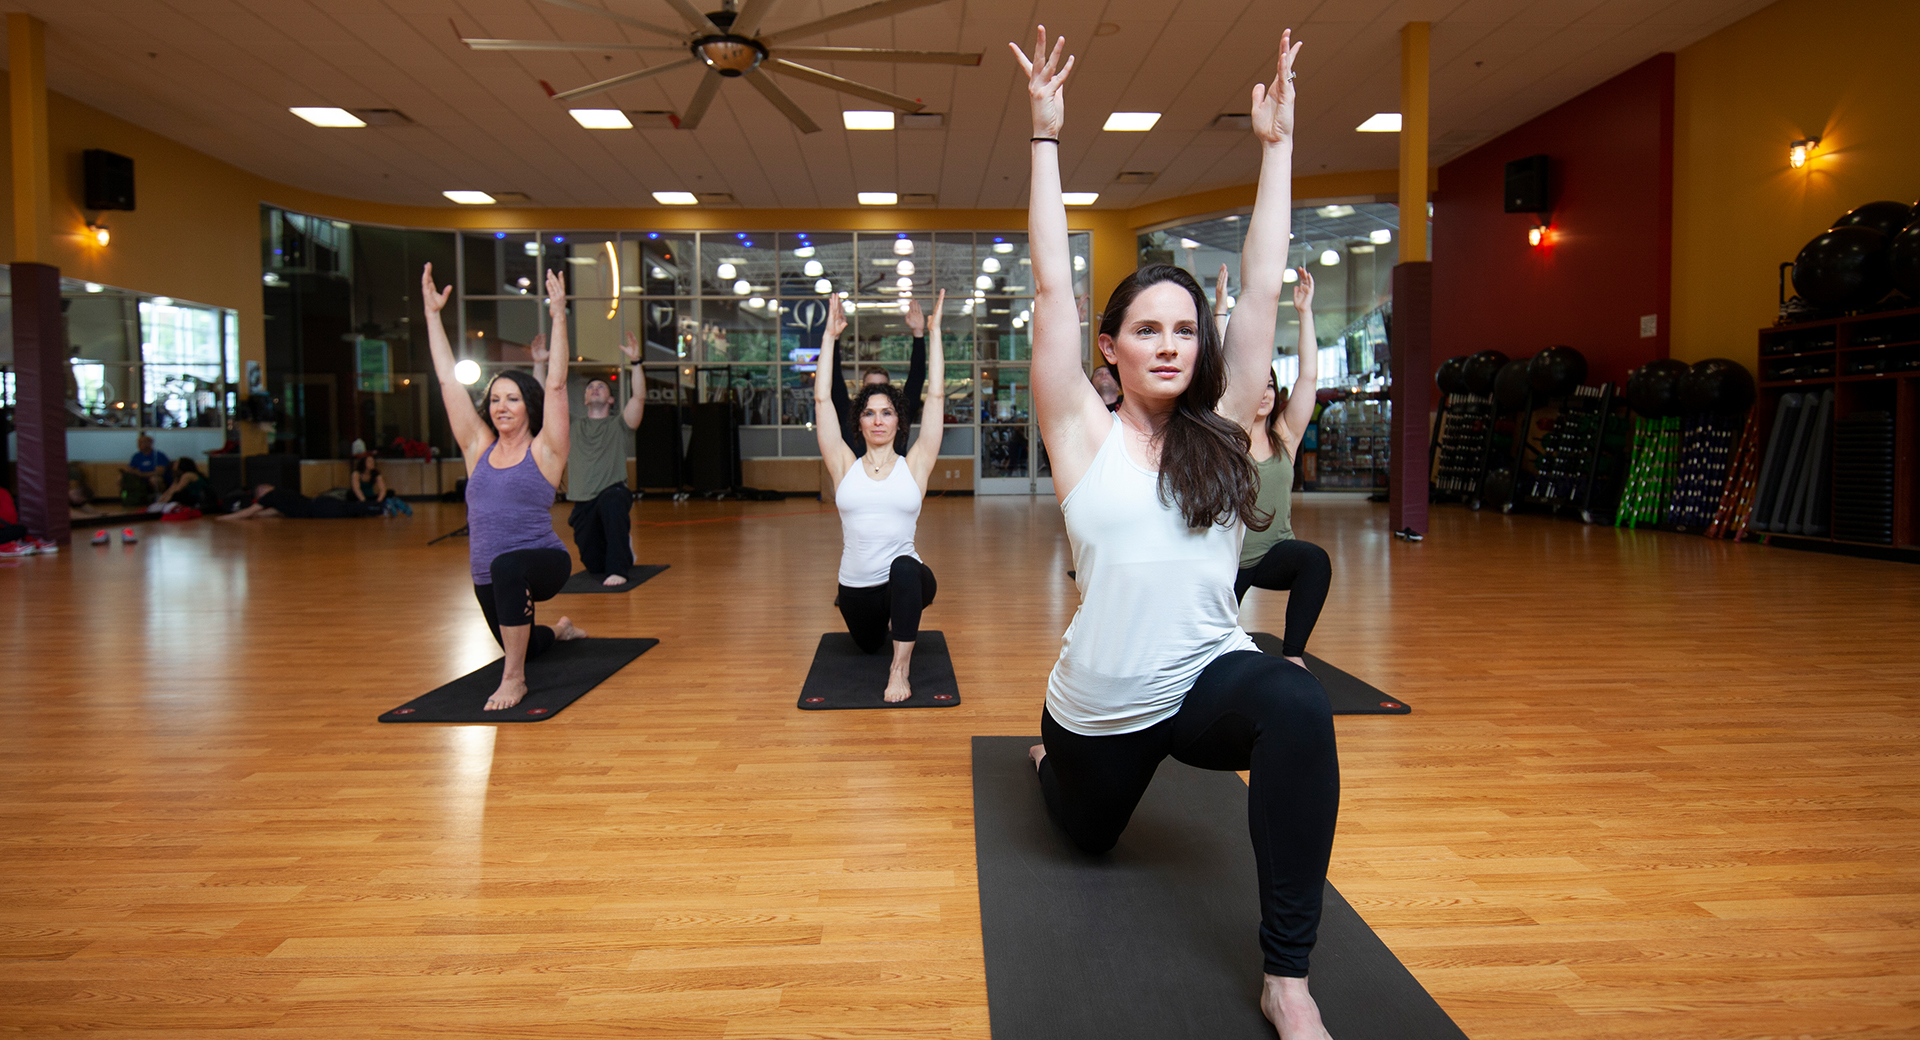 Yoga Classes: Book a Yoga Class at the Best Gym Ever ...